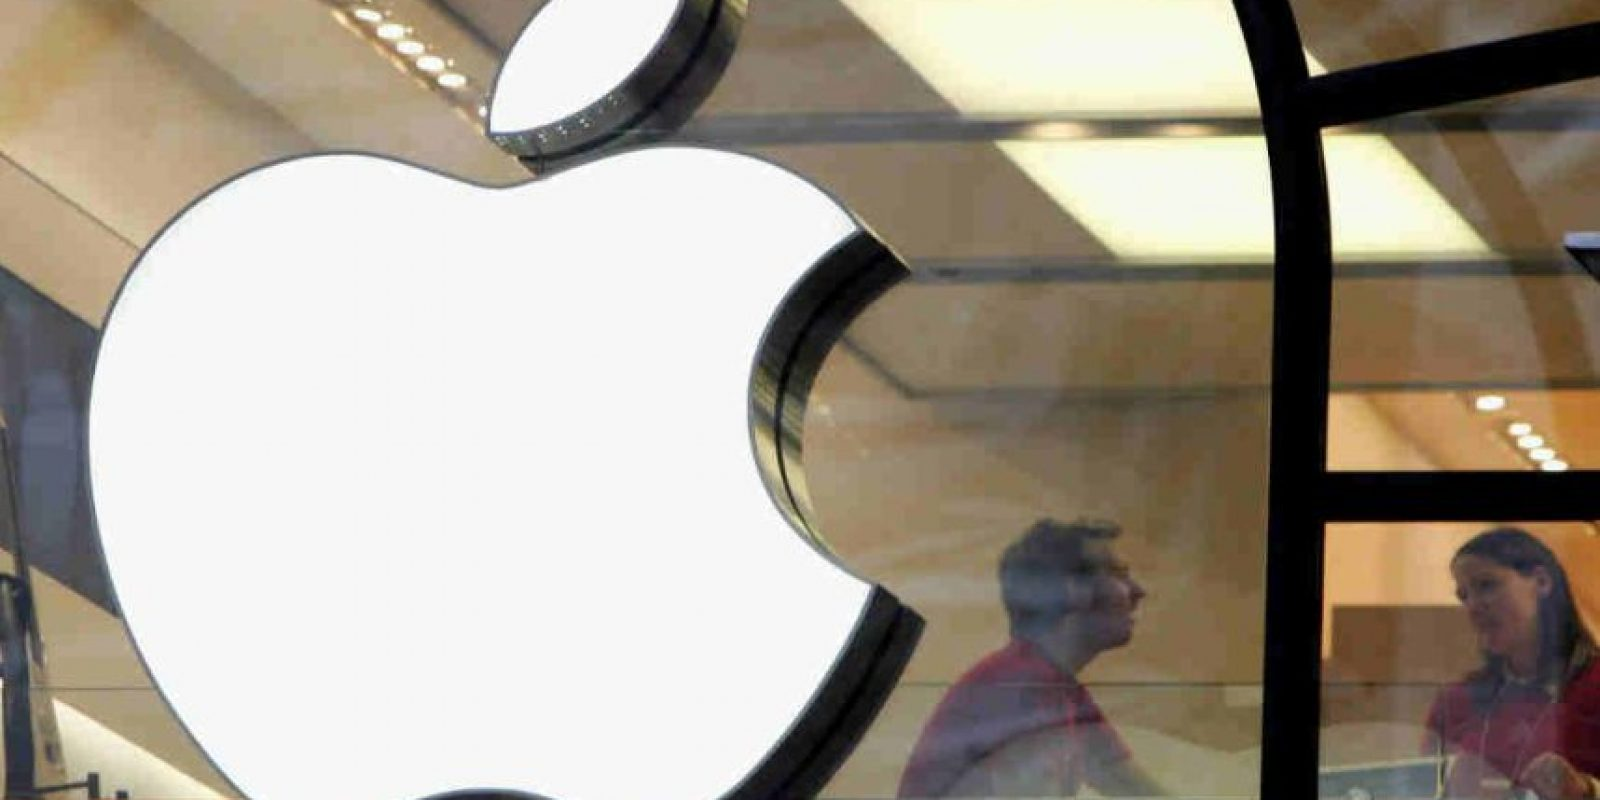 El asesino de San Bernardino. Sin embargo, Apple se negó. Foto: Getty Images